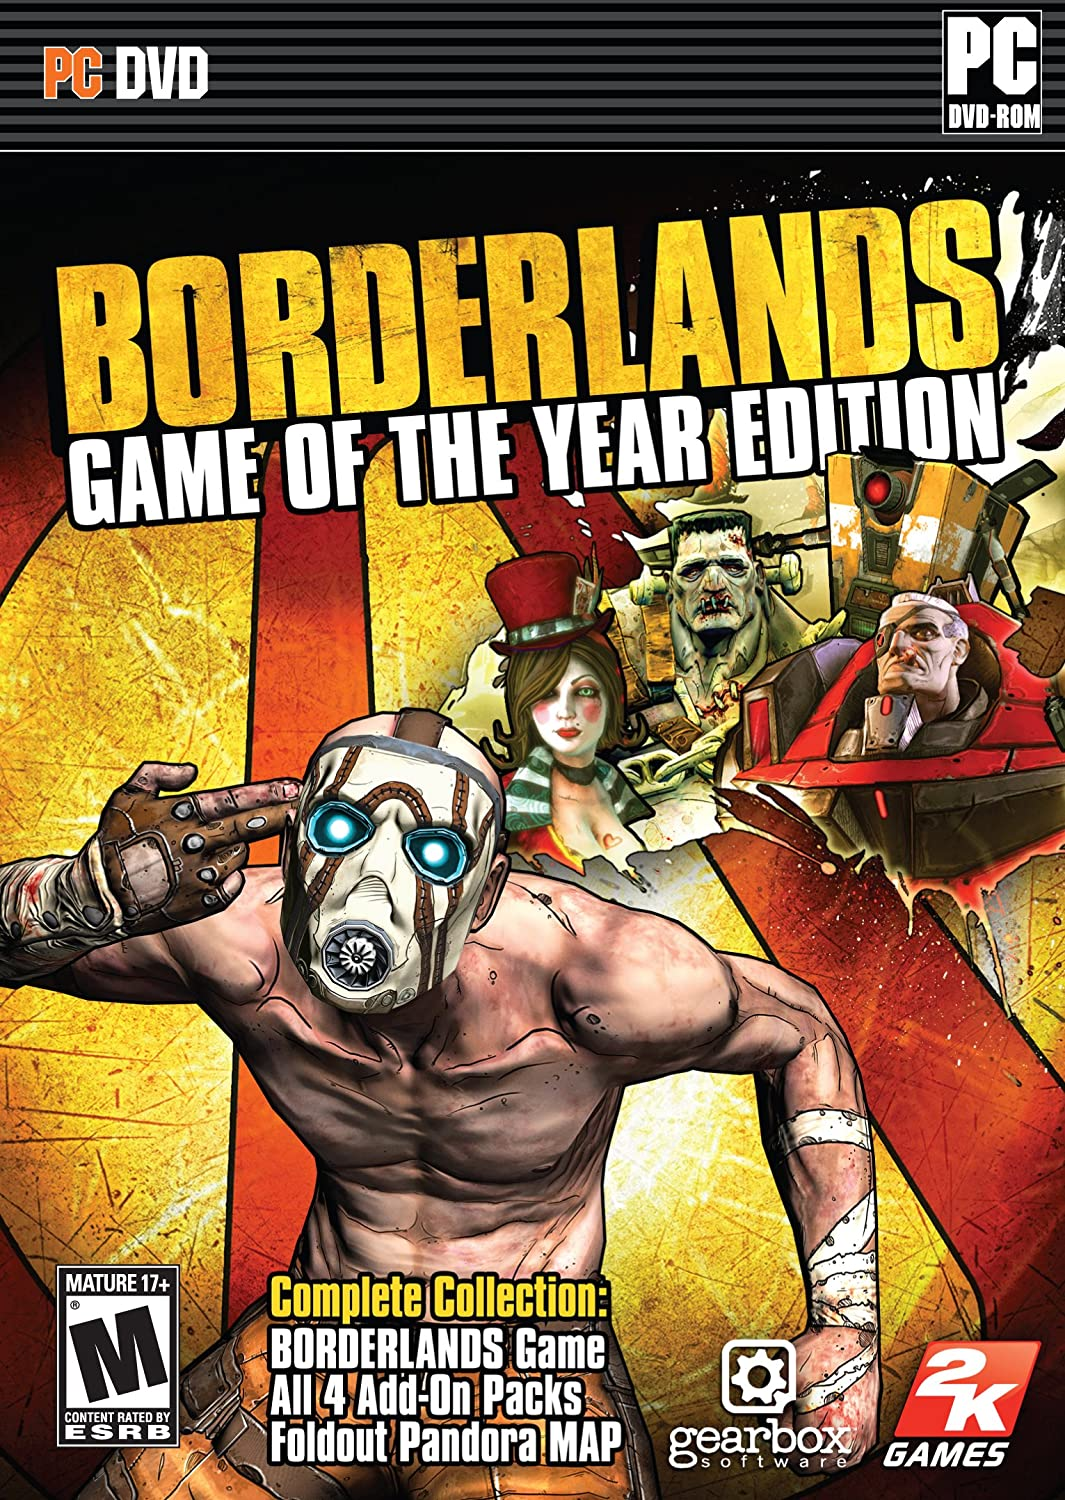 Amazon.com: Borderlands Game of the Year - PC: Video Games